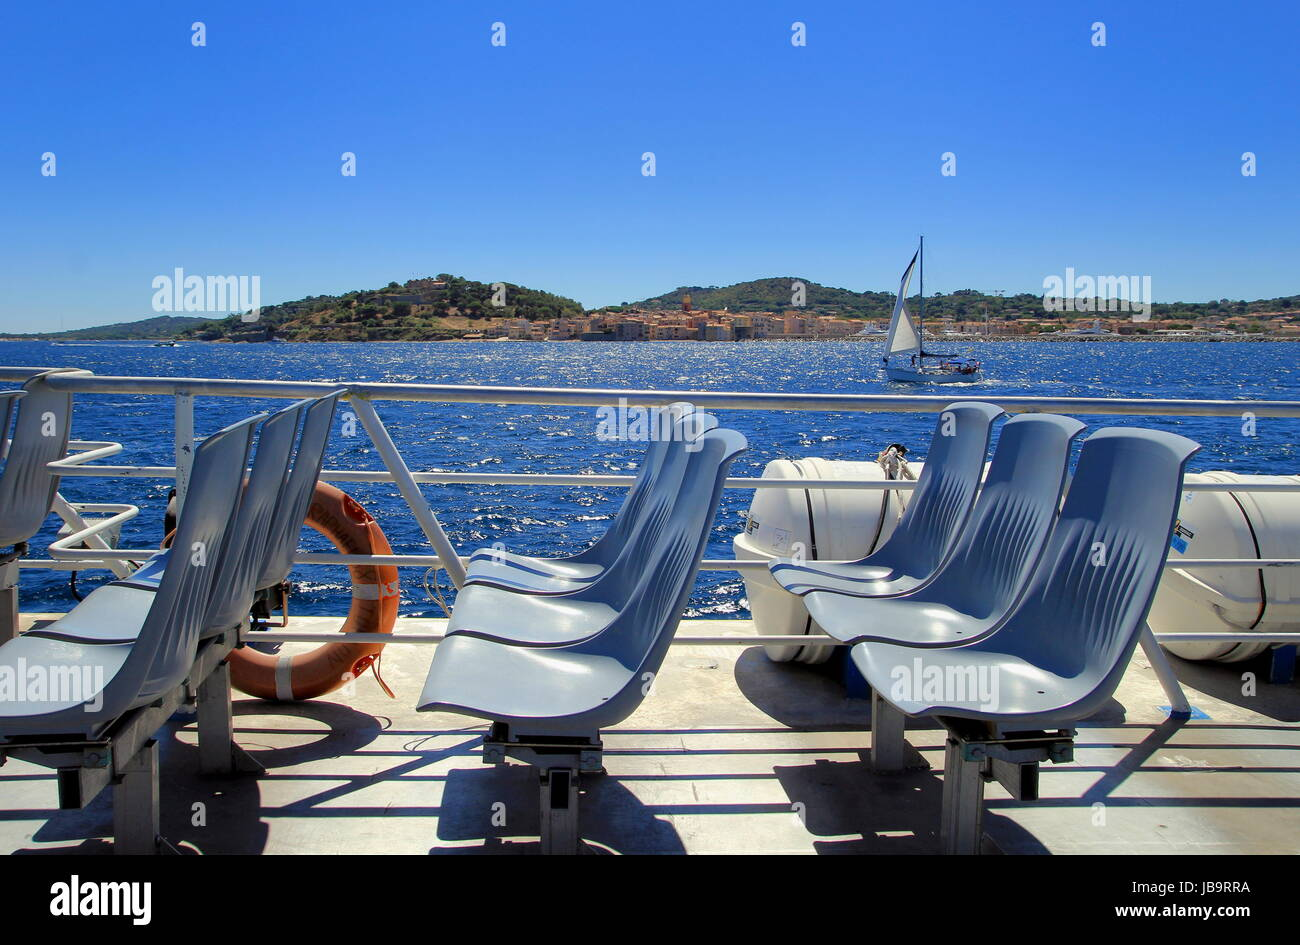 Saint-Tropez, Provence, France - August 21 2016: Seats on a passenger ferry from St Raphael to St Tropez, with a - Stock Image